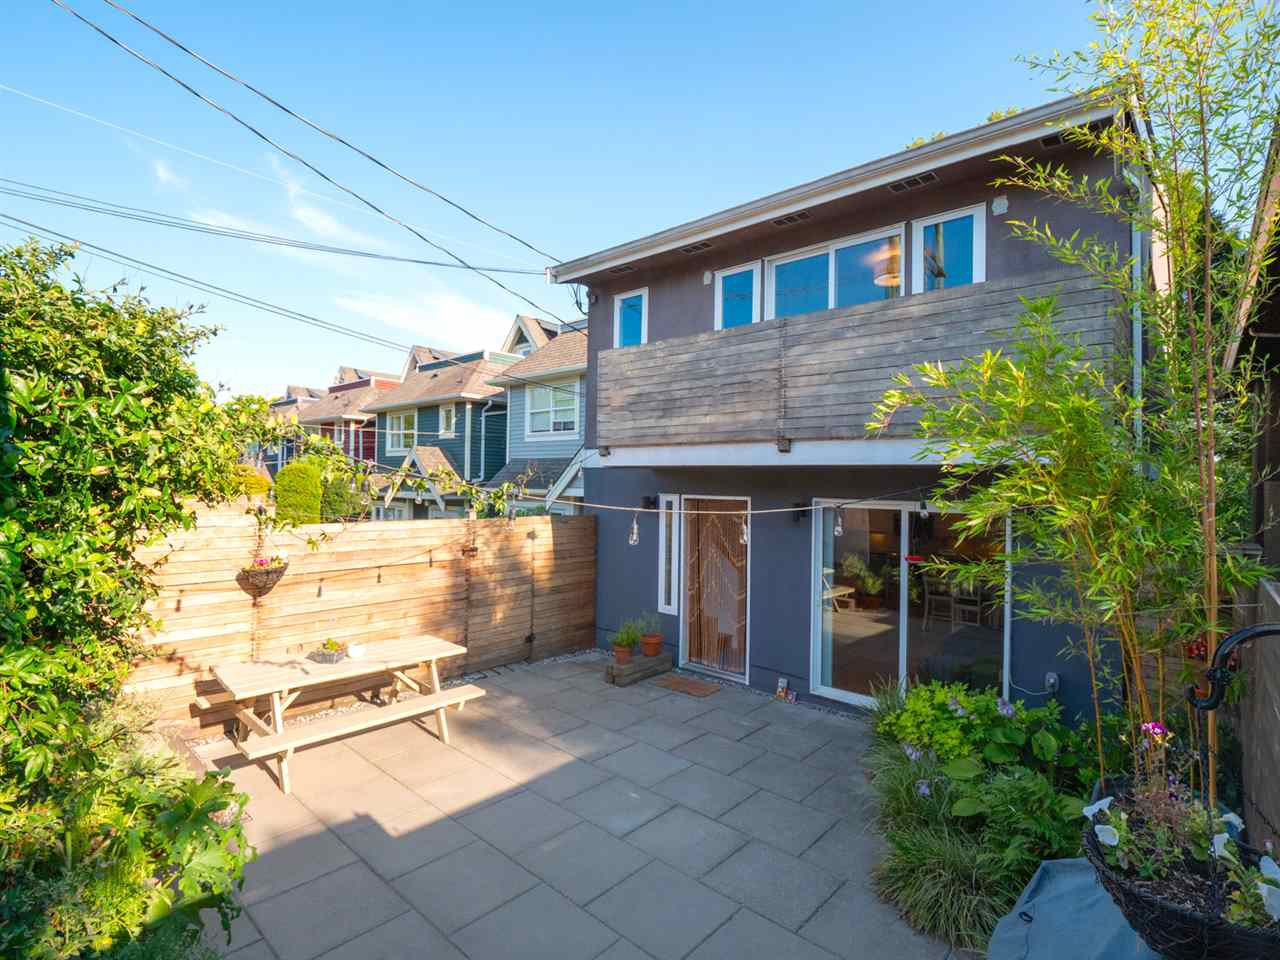 Main Photo: 873 PRIOR STREET in Vancouver: Strathcona House 1/2 Duplex for sale (Vancouver East)  : MLS®# R2413297